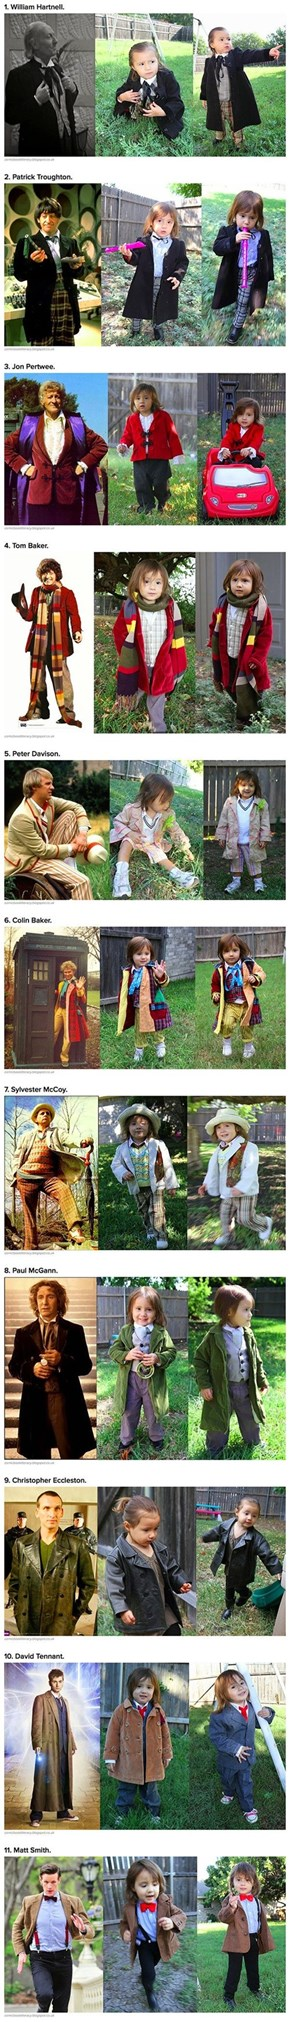 The Tiniest Whovian